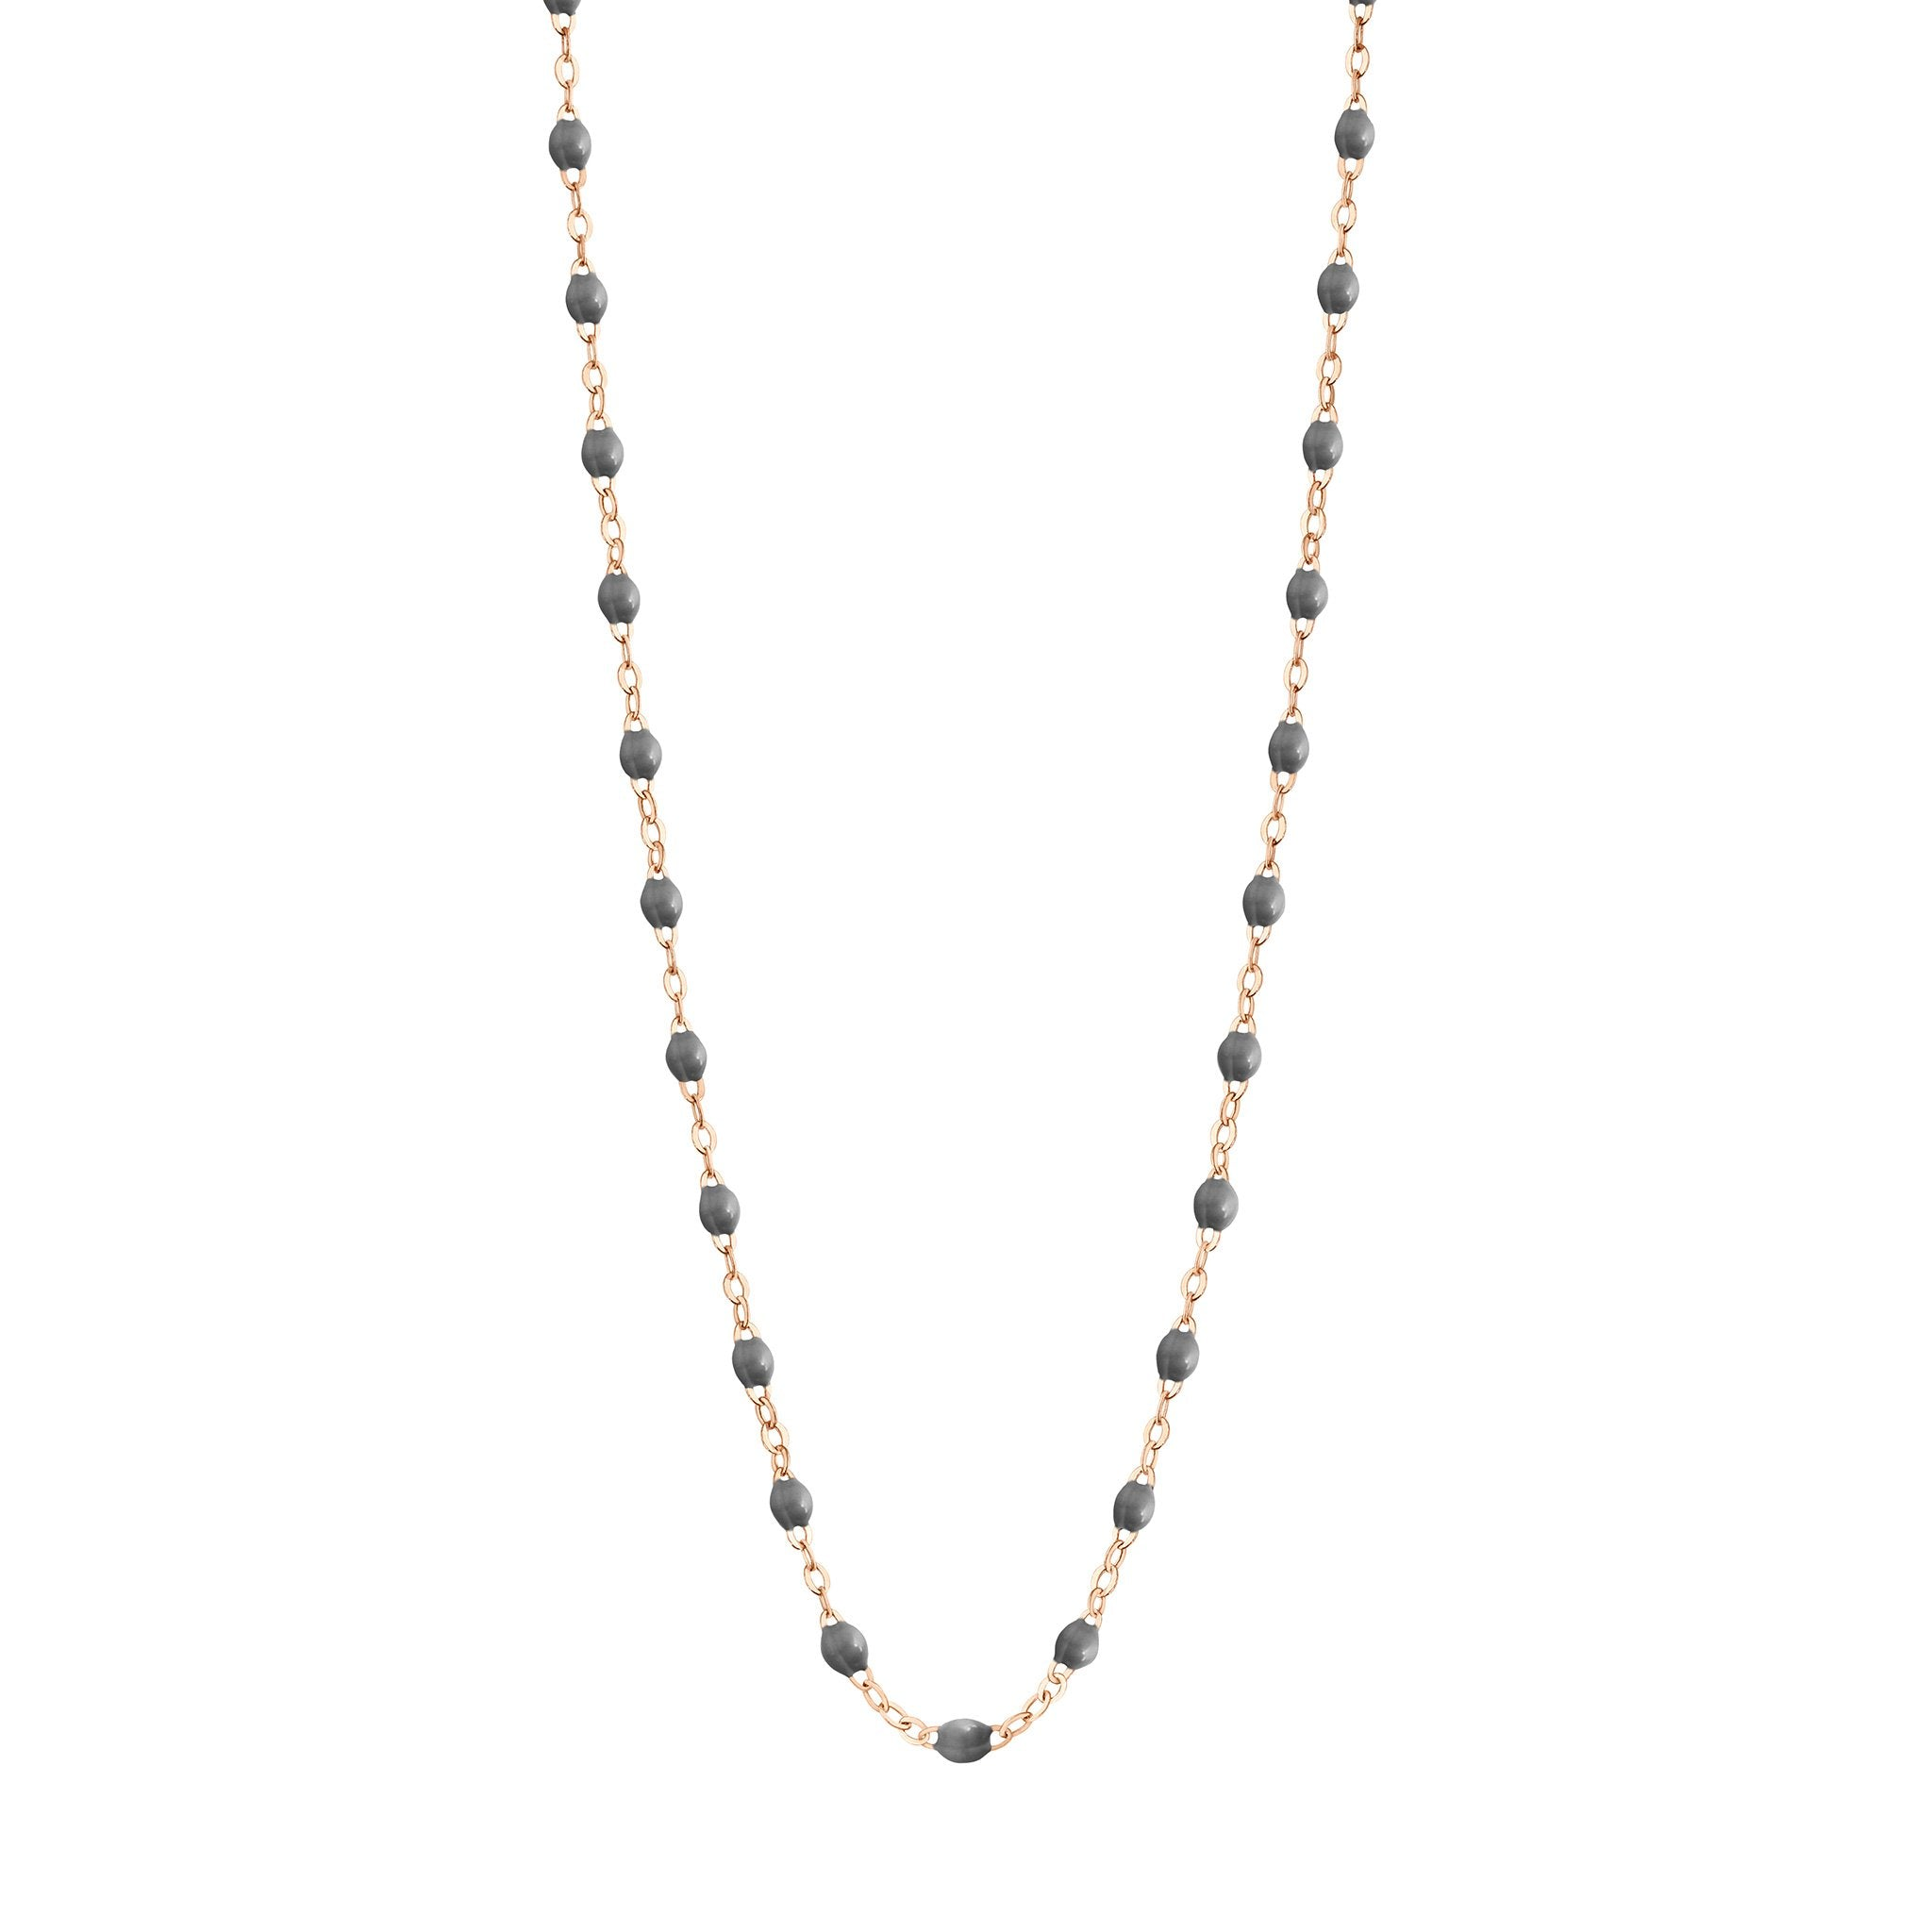 Gigi Clozeau - Classic Gigi Grey necklace, Rose Gold, 16.5""